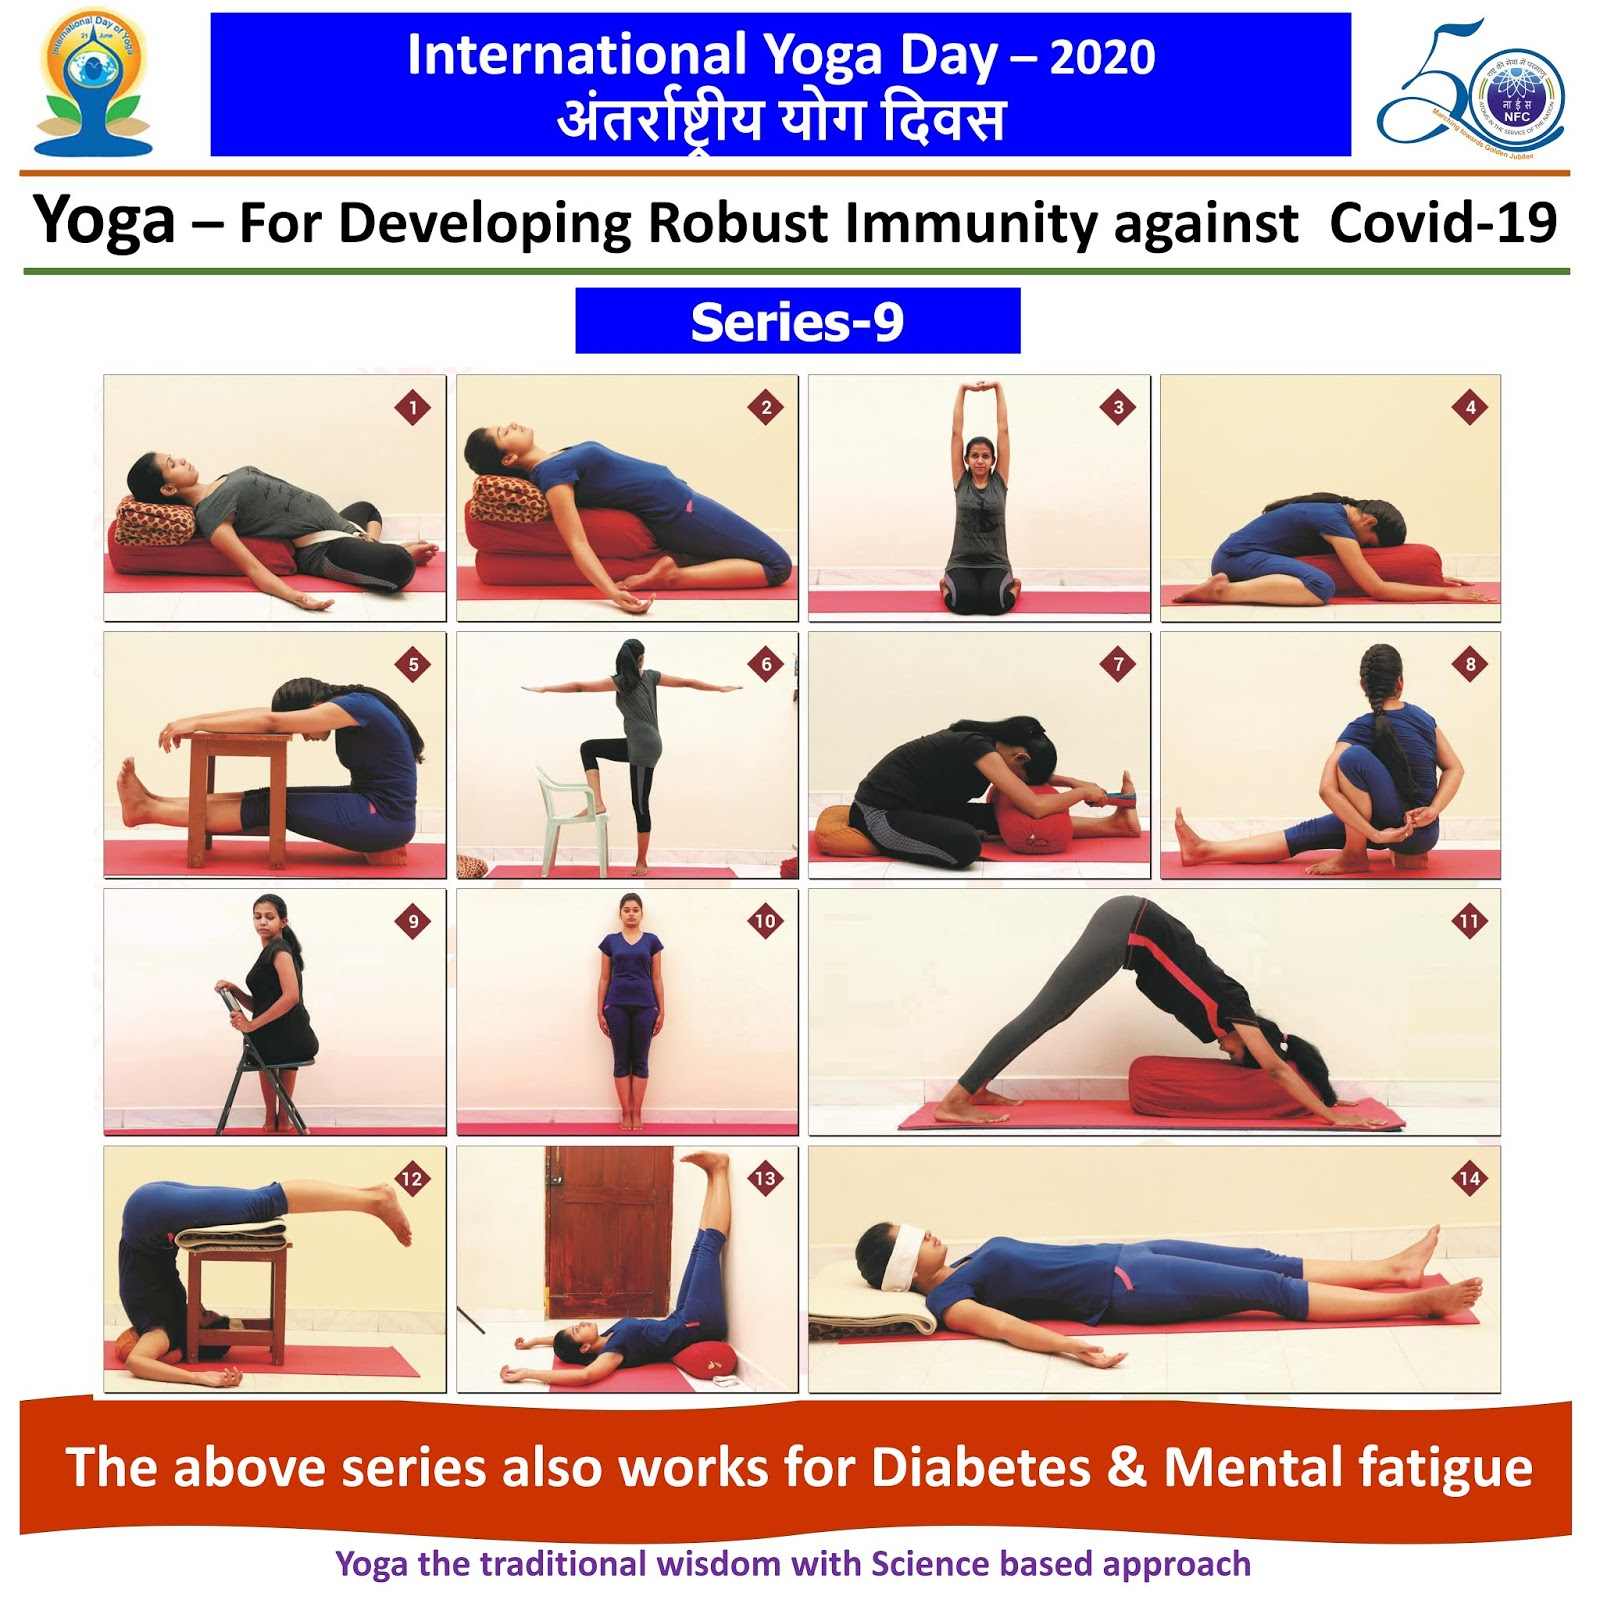 Happy International Yoga Day ... This series also works for Diabetes & Mental fatigue